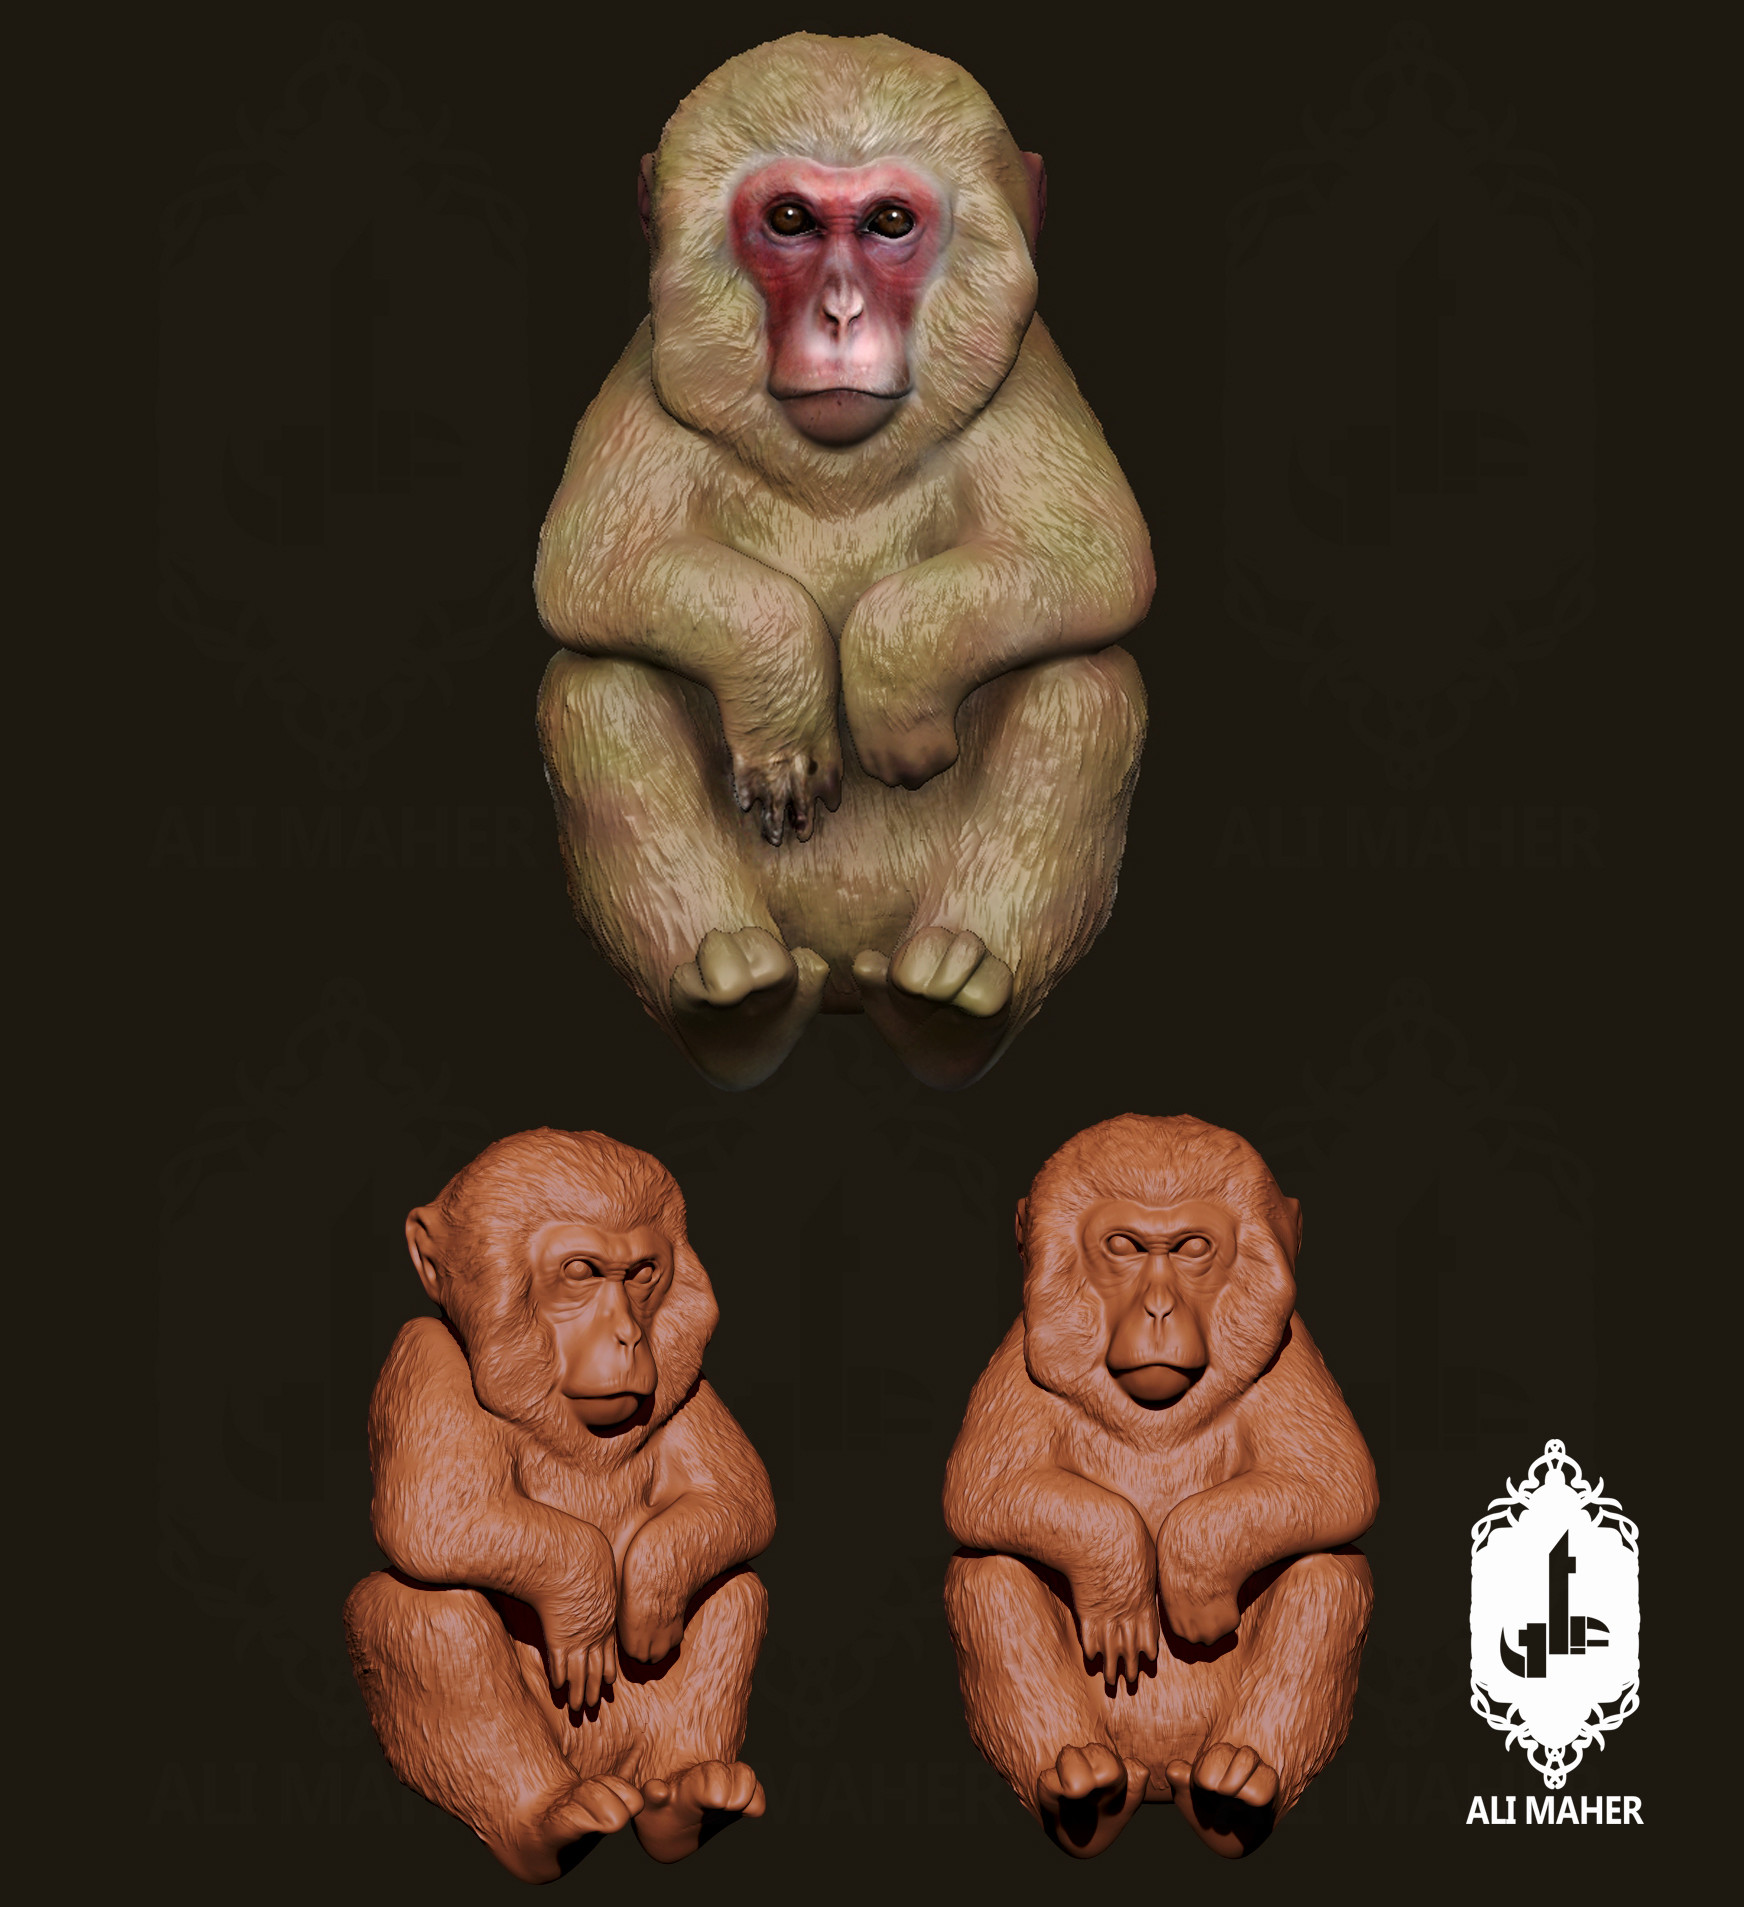 Ali maher all monkey alimaher